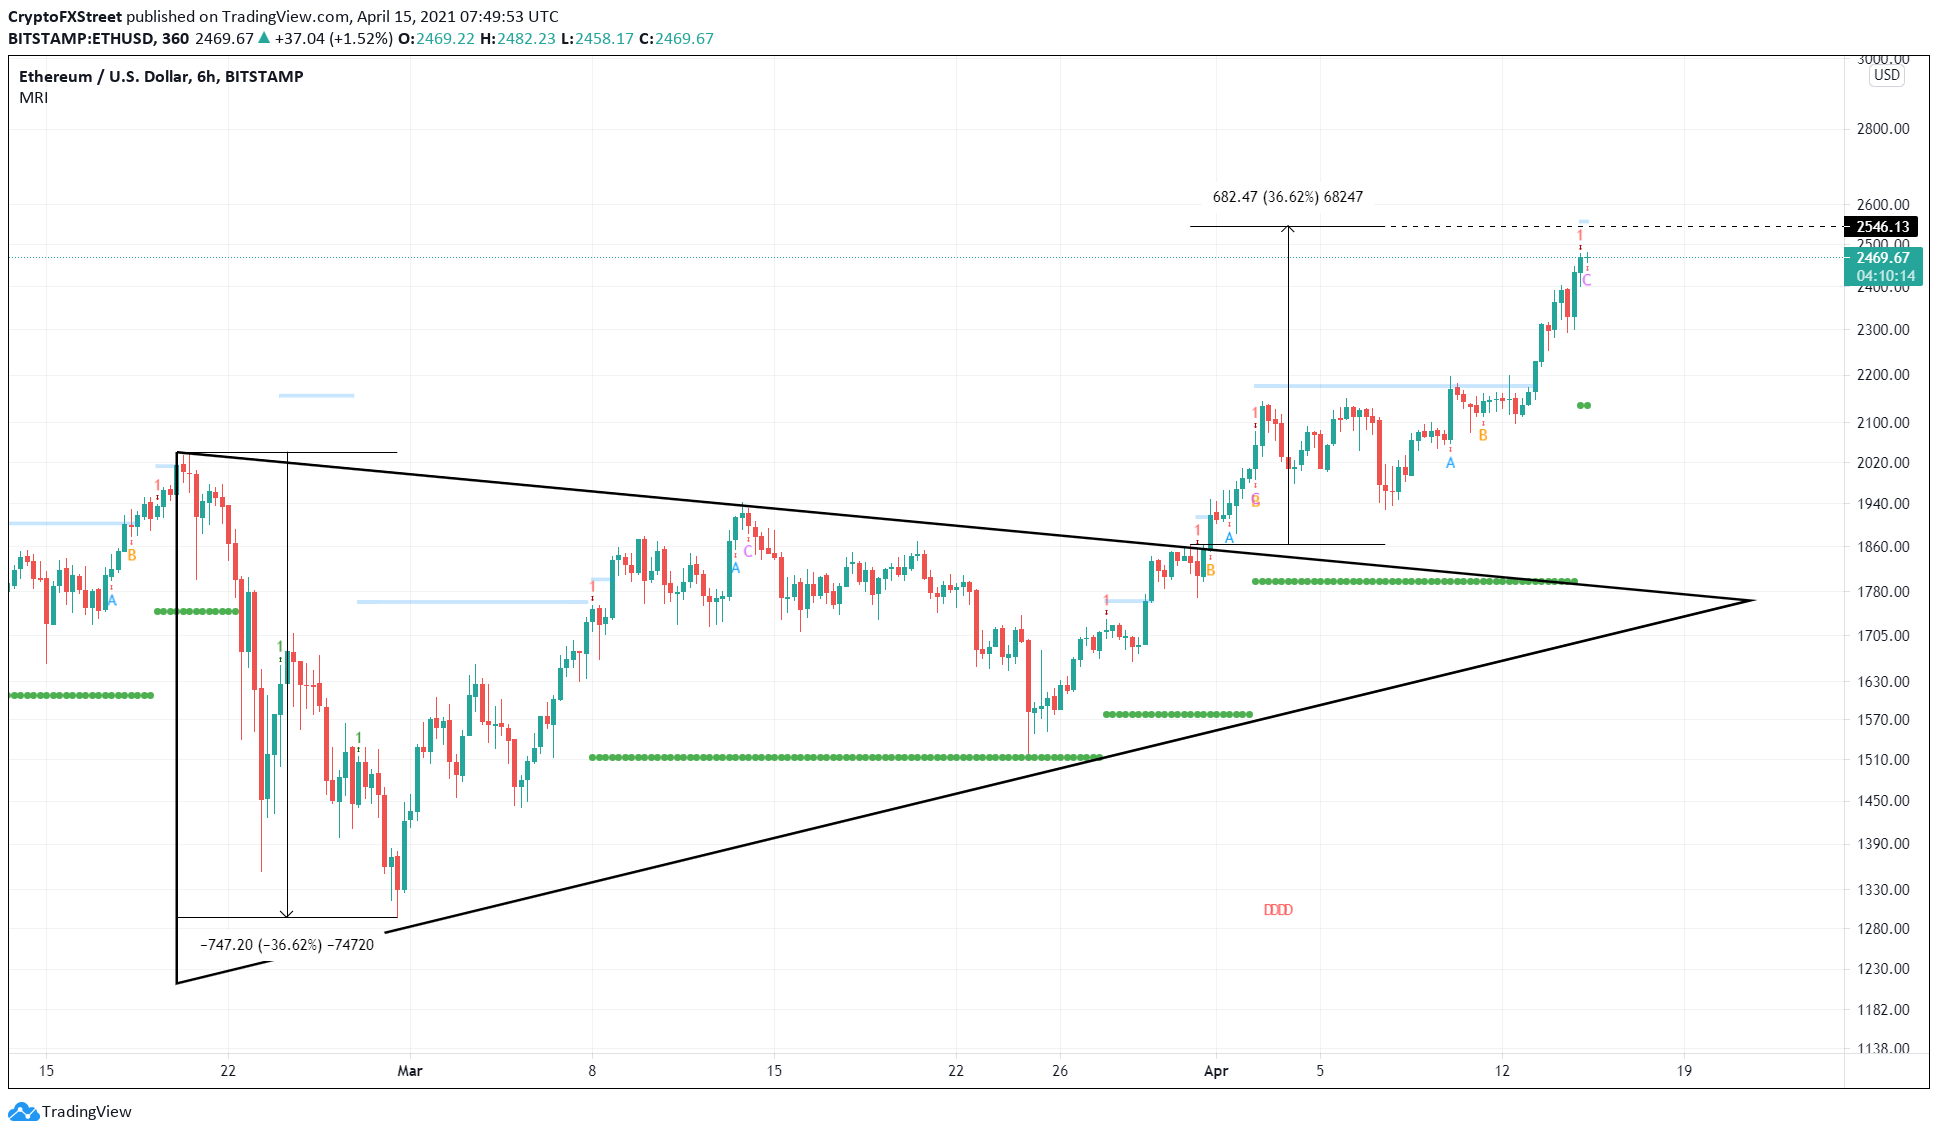 ETH/USD 6-hour chart